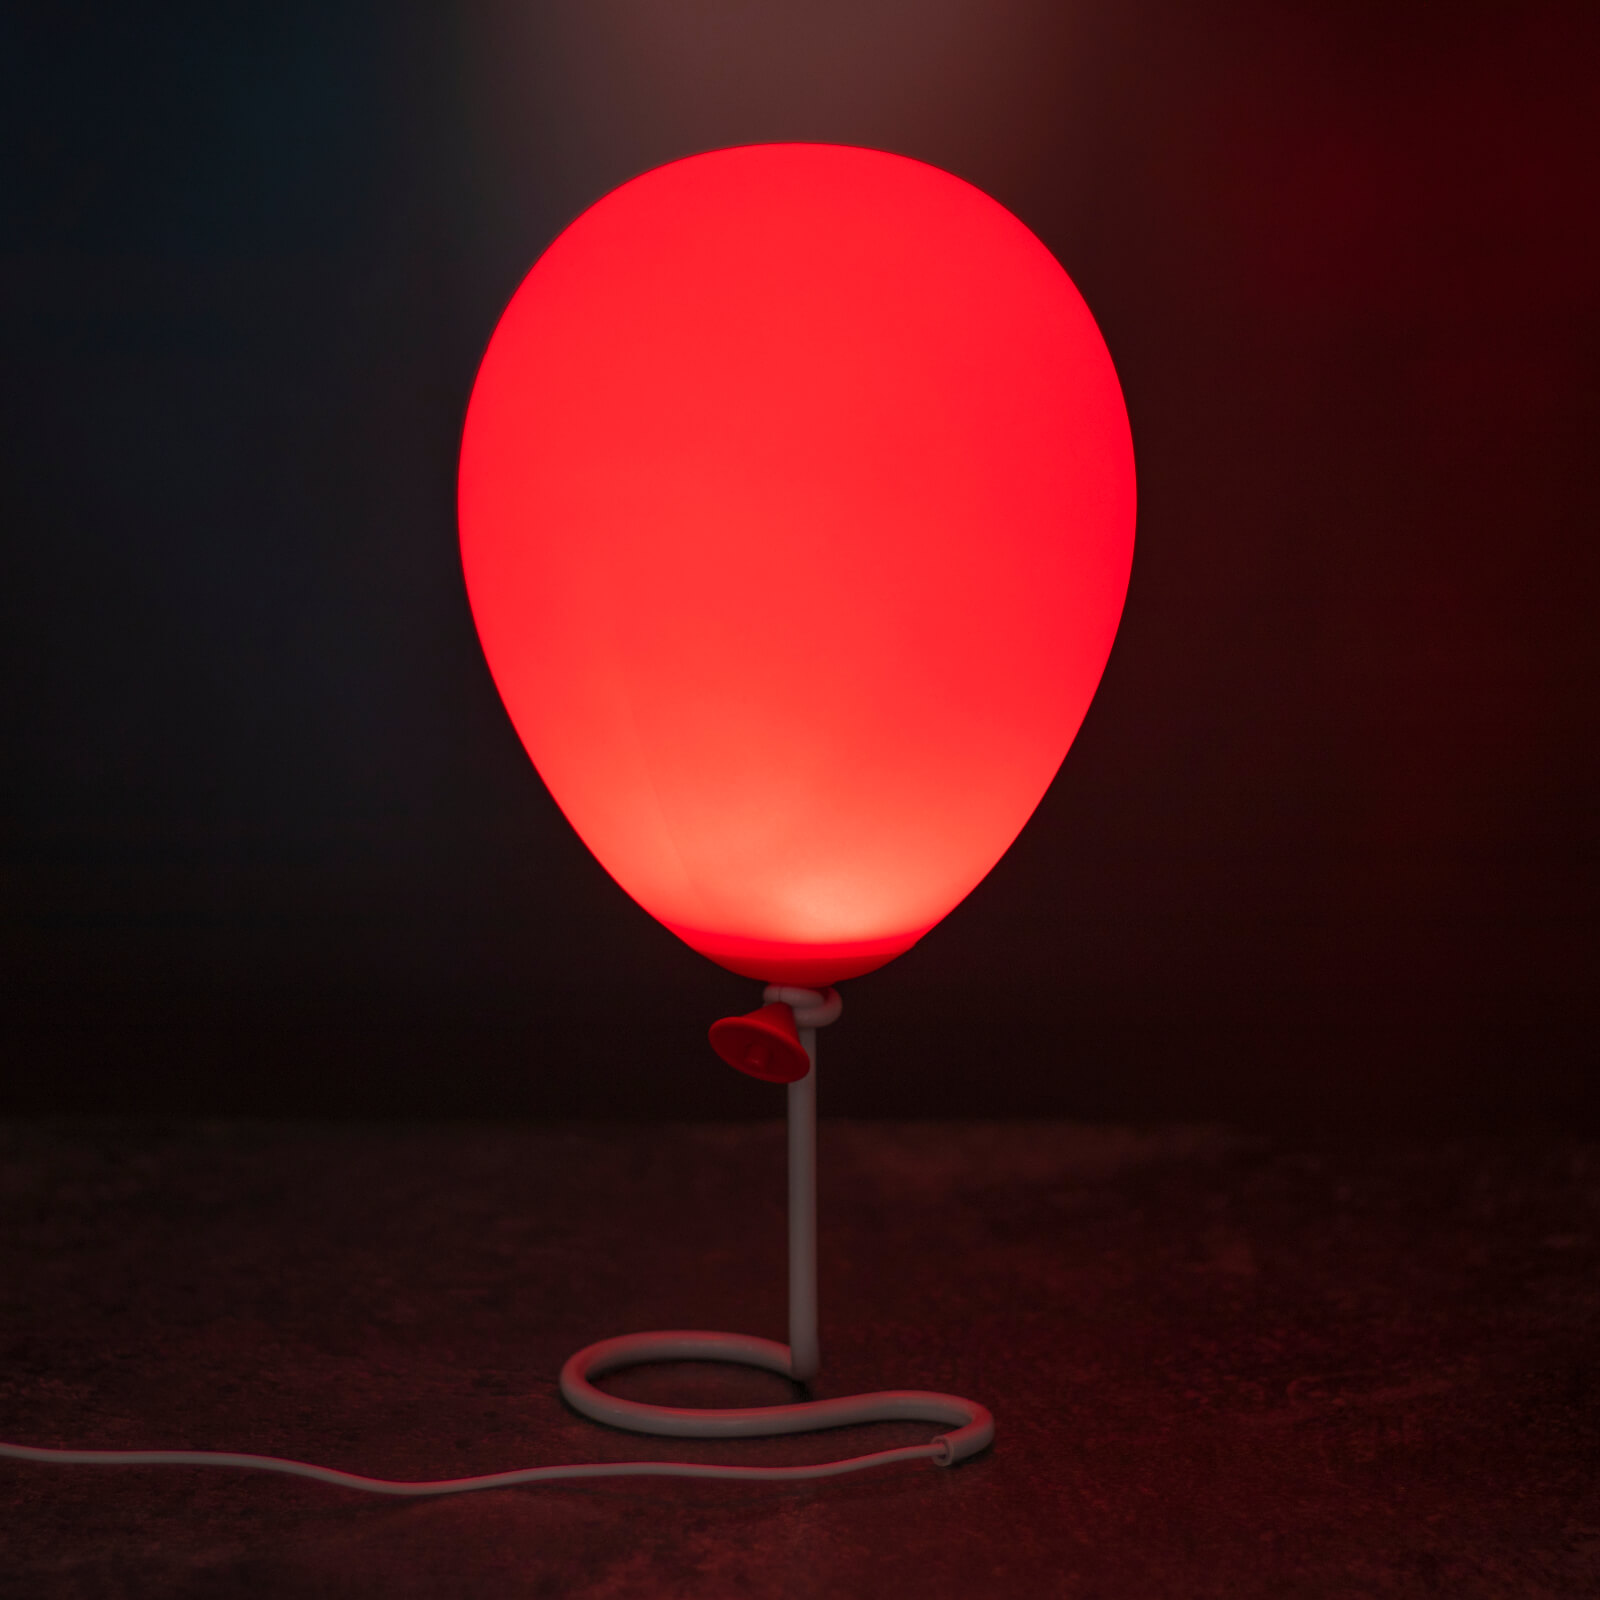 Pennywise IT Chapter Two Balloon Lamp Zavvi 2